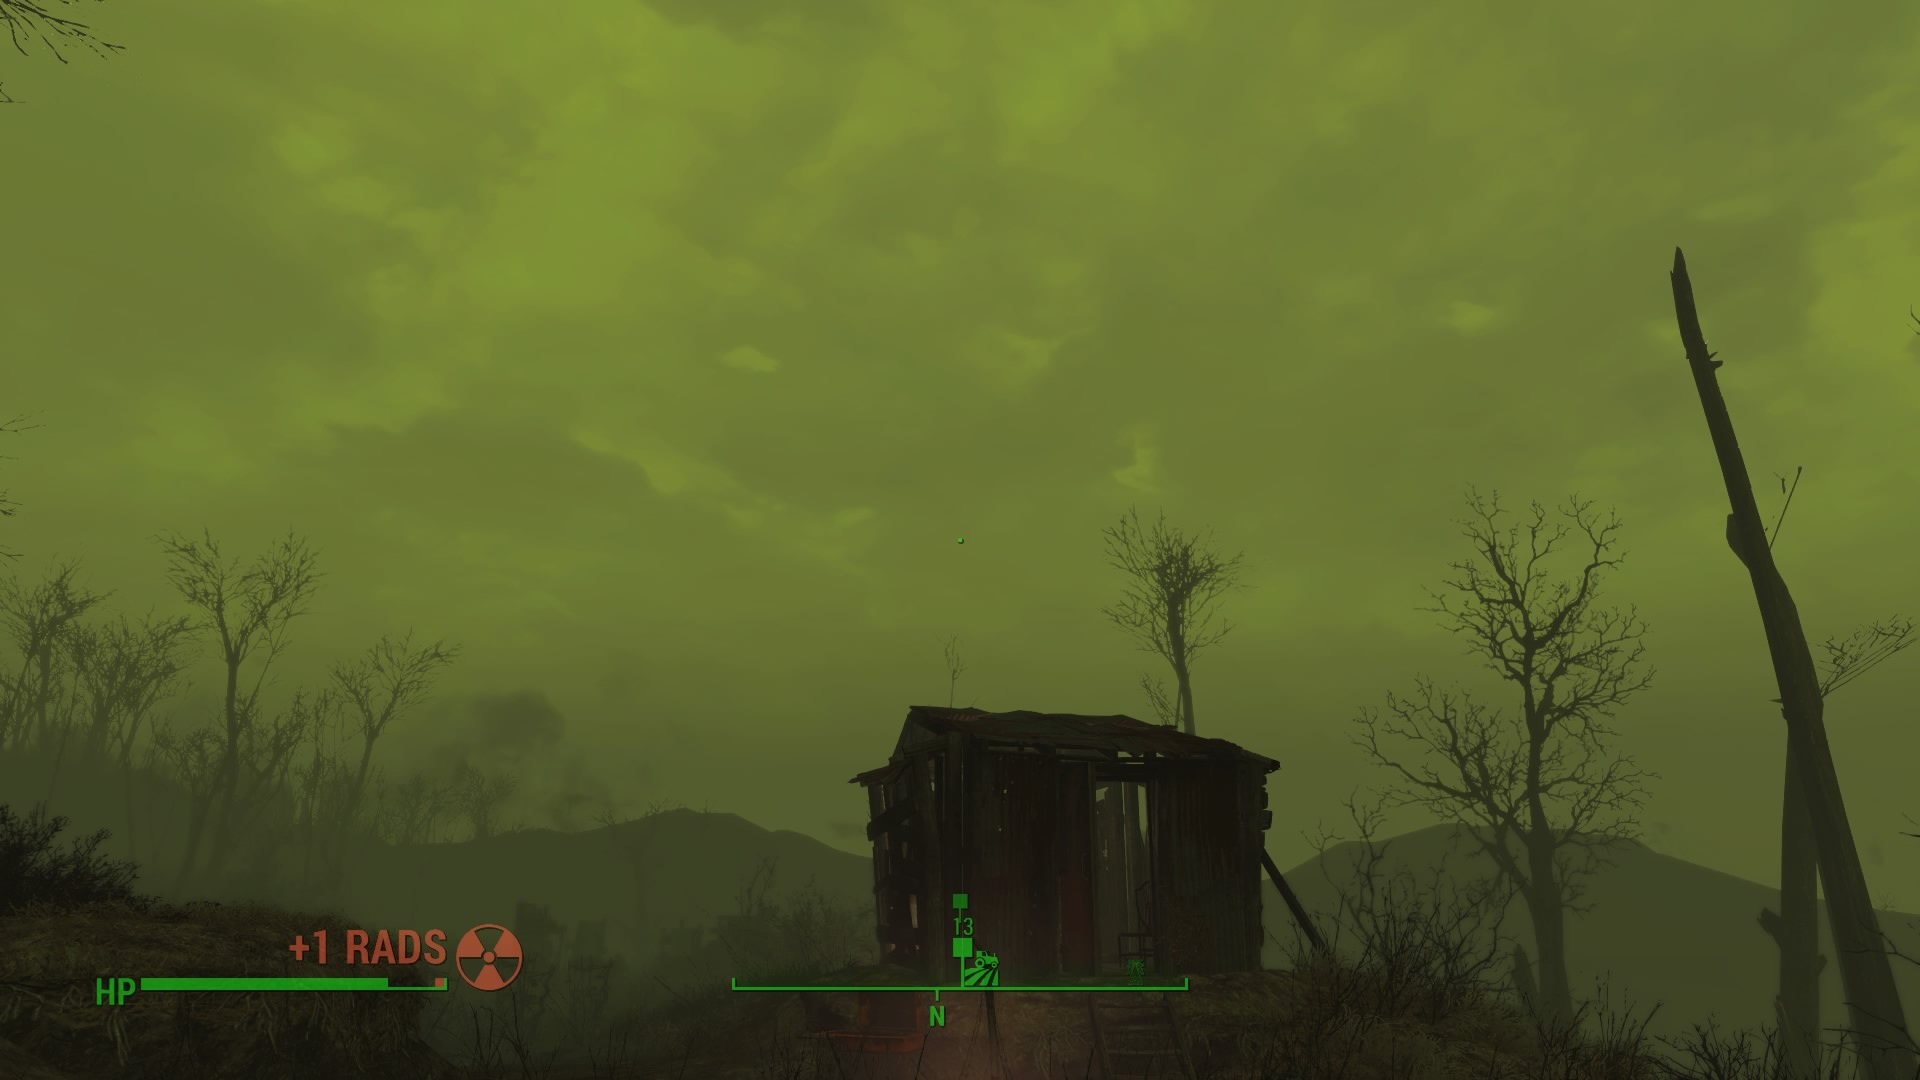 The dynamic weather in fallout 4 adds so much life to the game. I don't know what else to call this but a Radiation storm or a green out. It just rolled in and scared the dookie outta me. There was lightning and shit everywhere, i went inside the shed for a while. Some bitch was living there so i slept in her bed for 2 hours to ride out the storm; left her an old fan and a fire extinguisher as thanks then left. 10/10